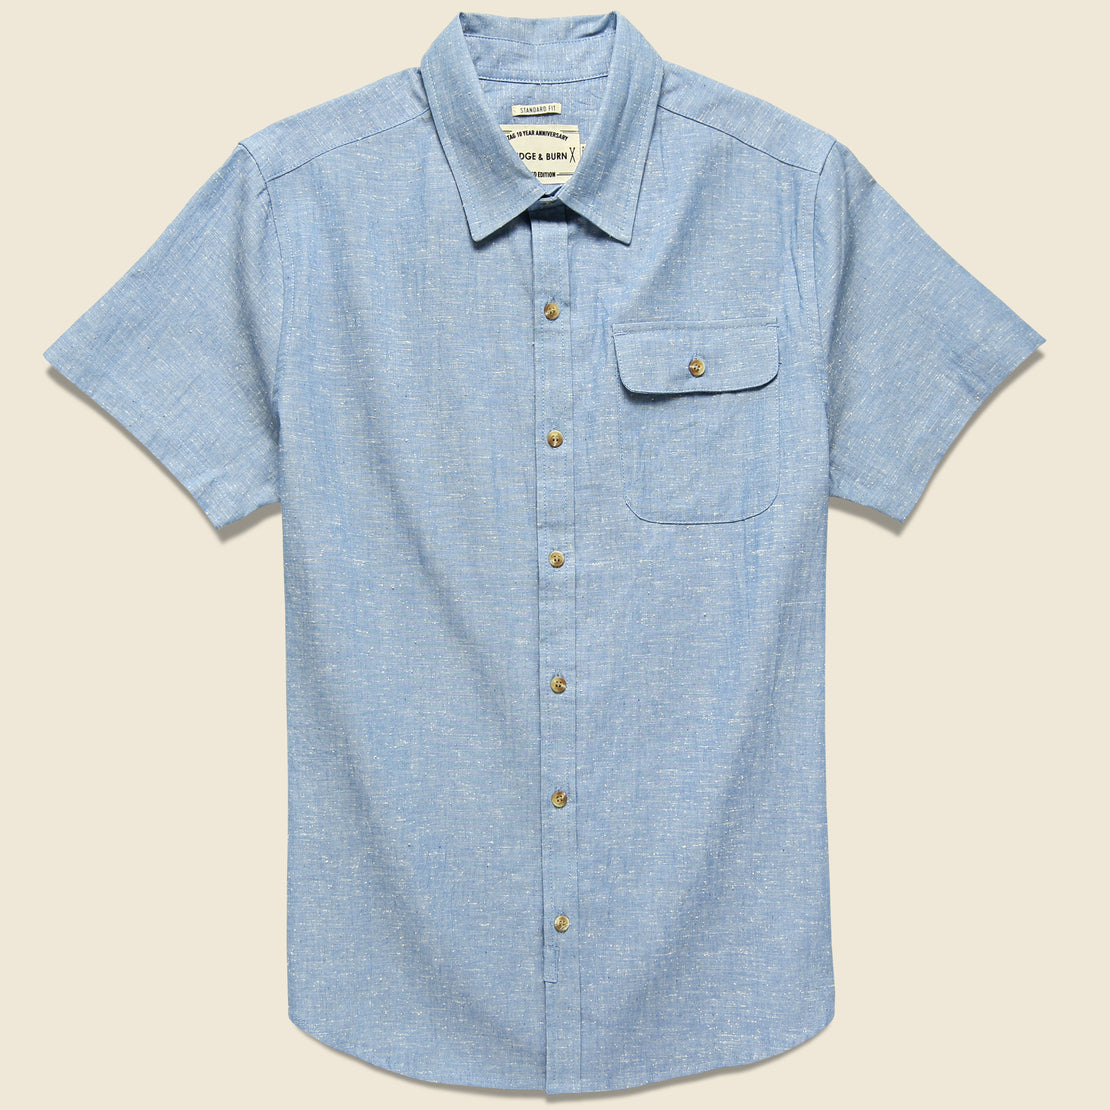 Bridge & Burn Marten Slub Chambray Shirt - Medium Indigo